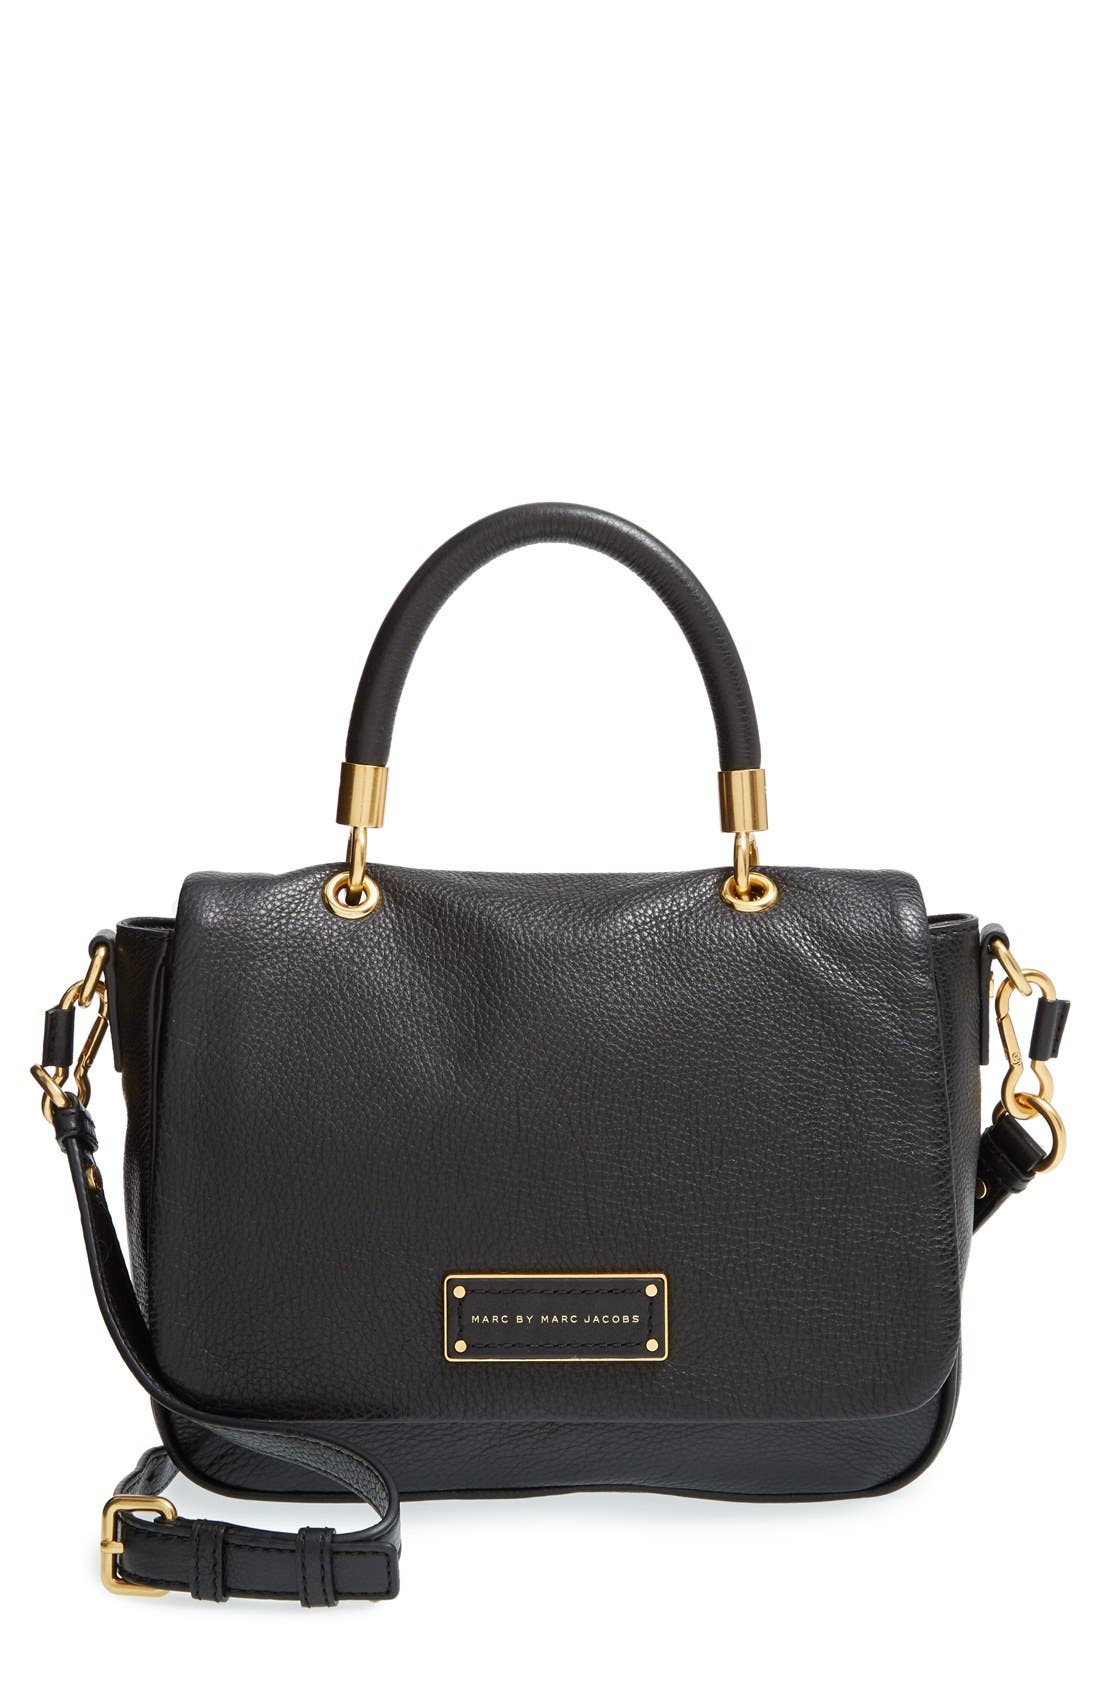 Main Image - MARC BY MARC JACOBS 'Small Too Hot To Handle' Leather Tote